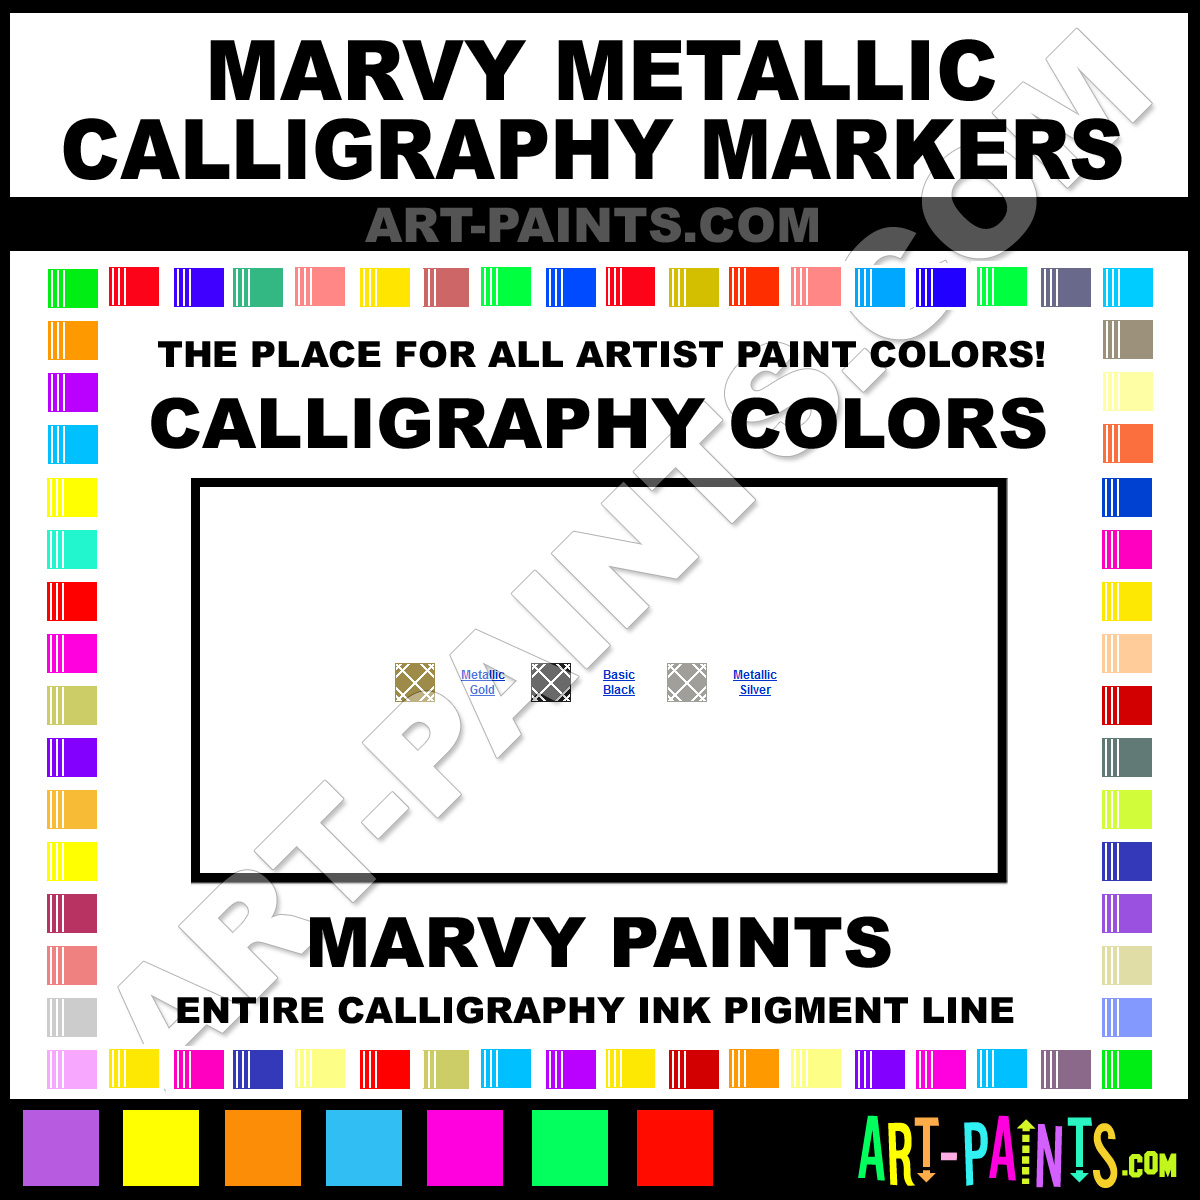 Marvy Metallic Markers Calligraphy Ink Pigment Colors